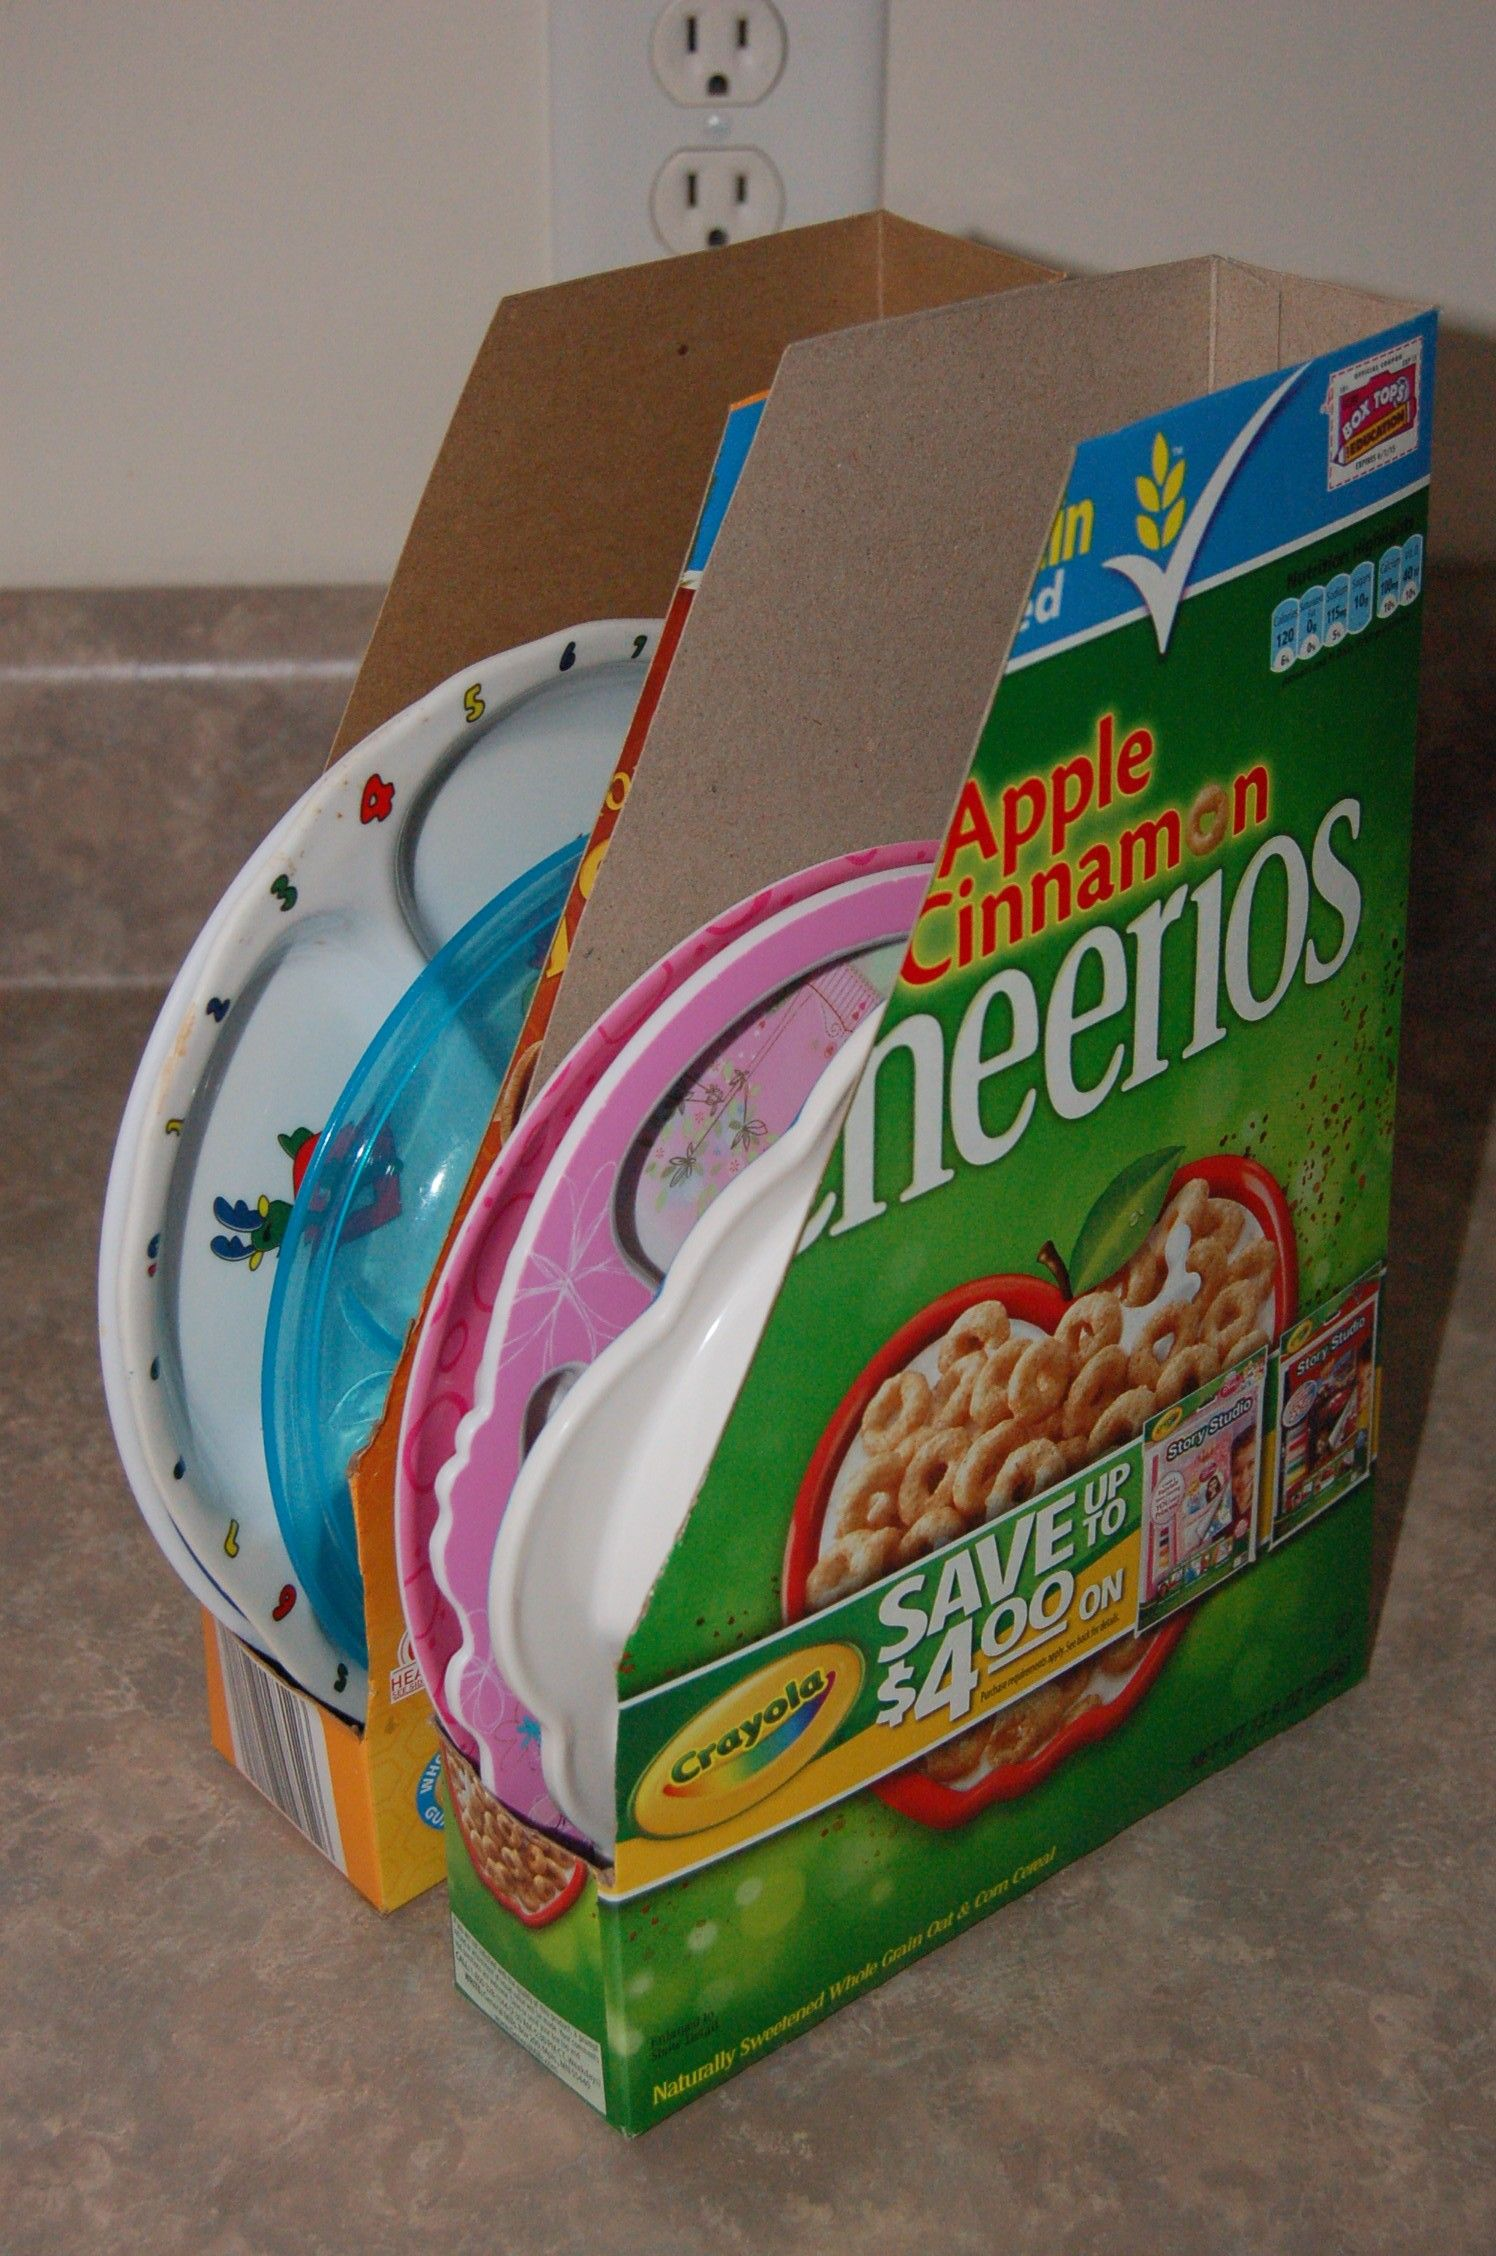 My daughter's plates were so annoying to stack in the cabinets since they're all different sizes and have all different styles. So, I made these handy plate organizers from cereal boxes. No more plates falling in my face when I open the cabinet door and I now have more space in there as well!